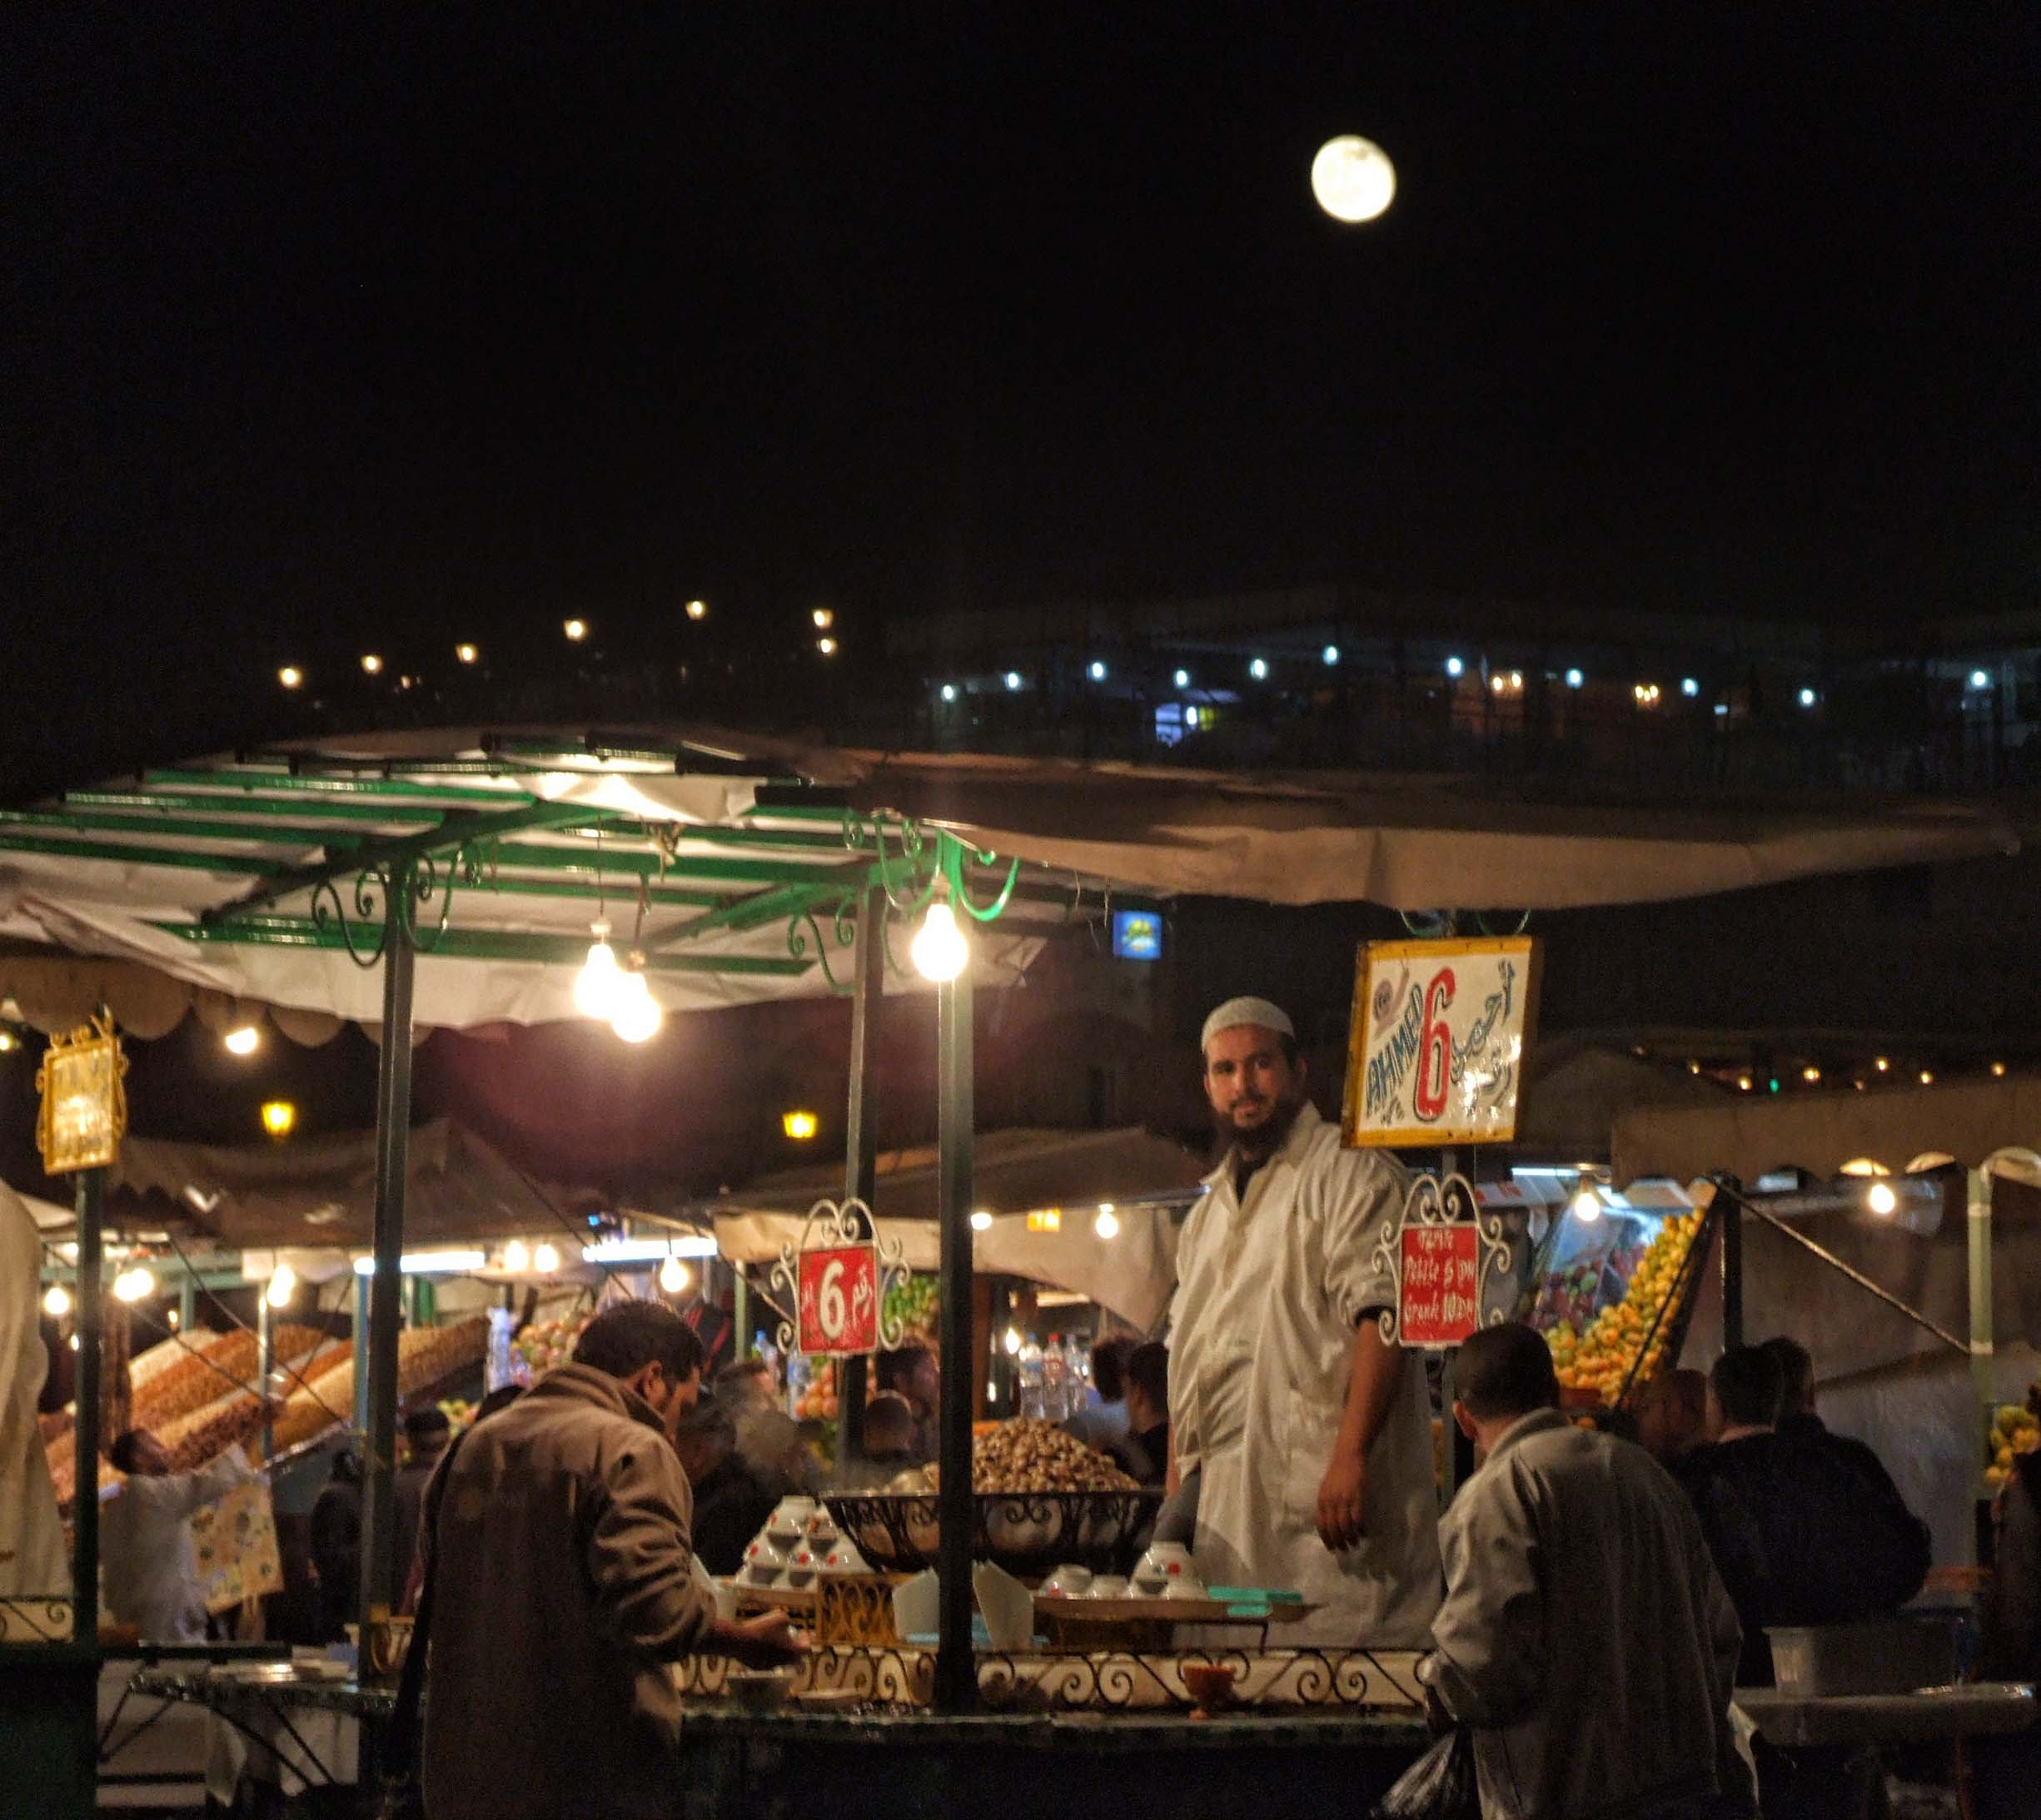 Food stalls at night with moon overhead